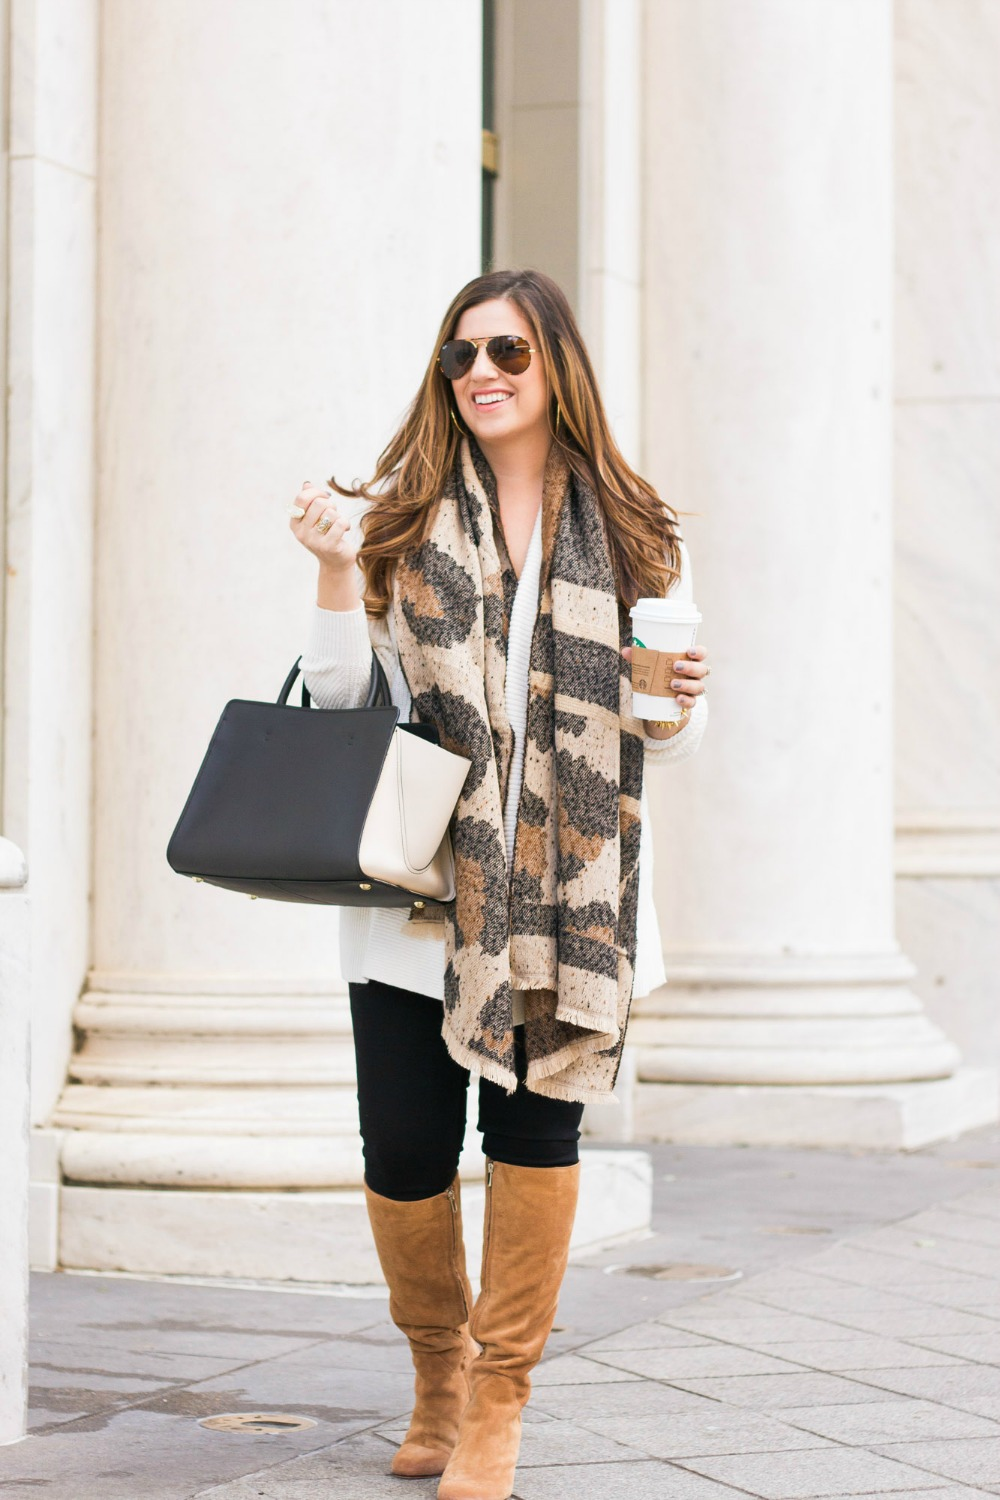 $26 Leopard Scarf, Best Leopard Scarf, Fall Outfit Inspo by Jaime Cittadino of Sunflowers and Stilettos